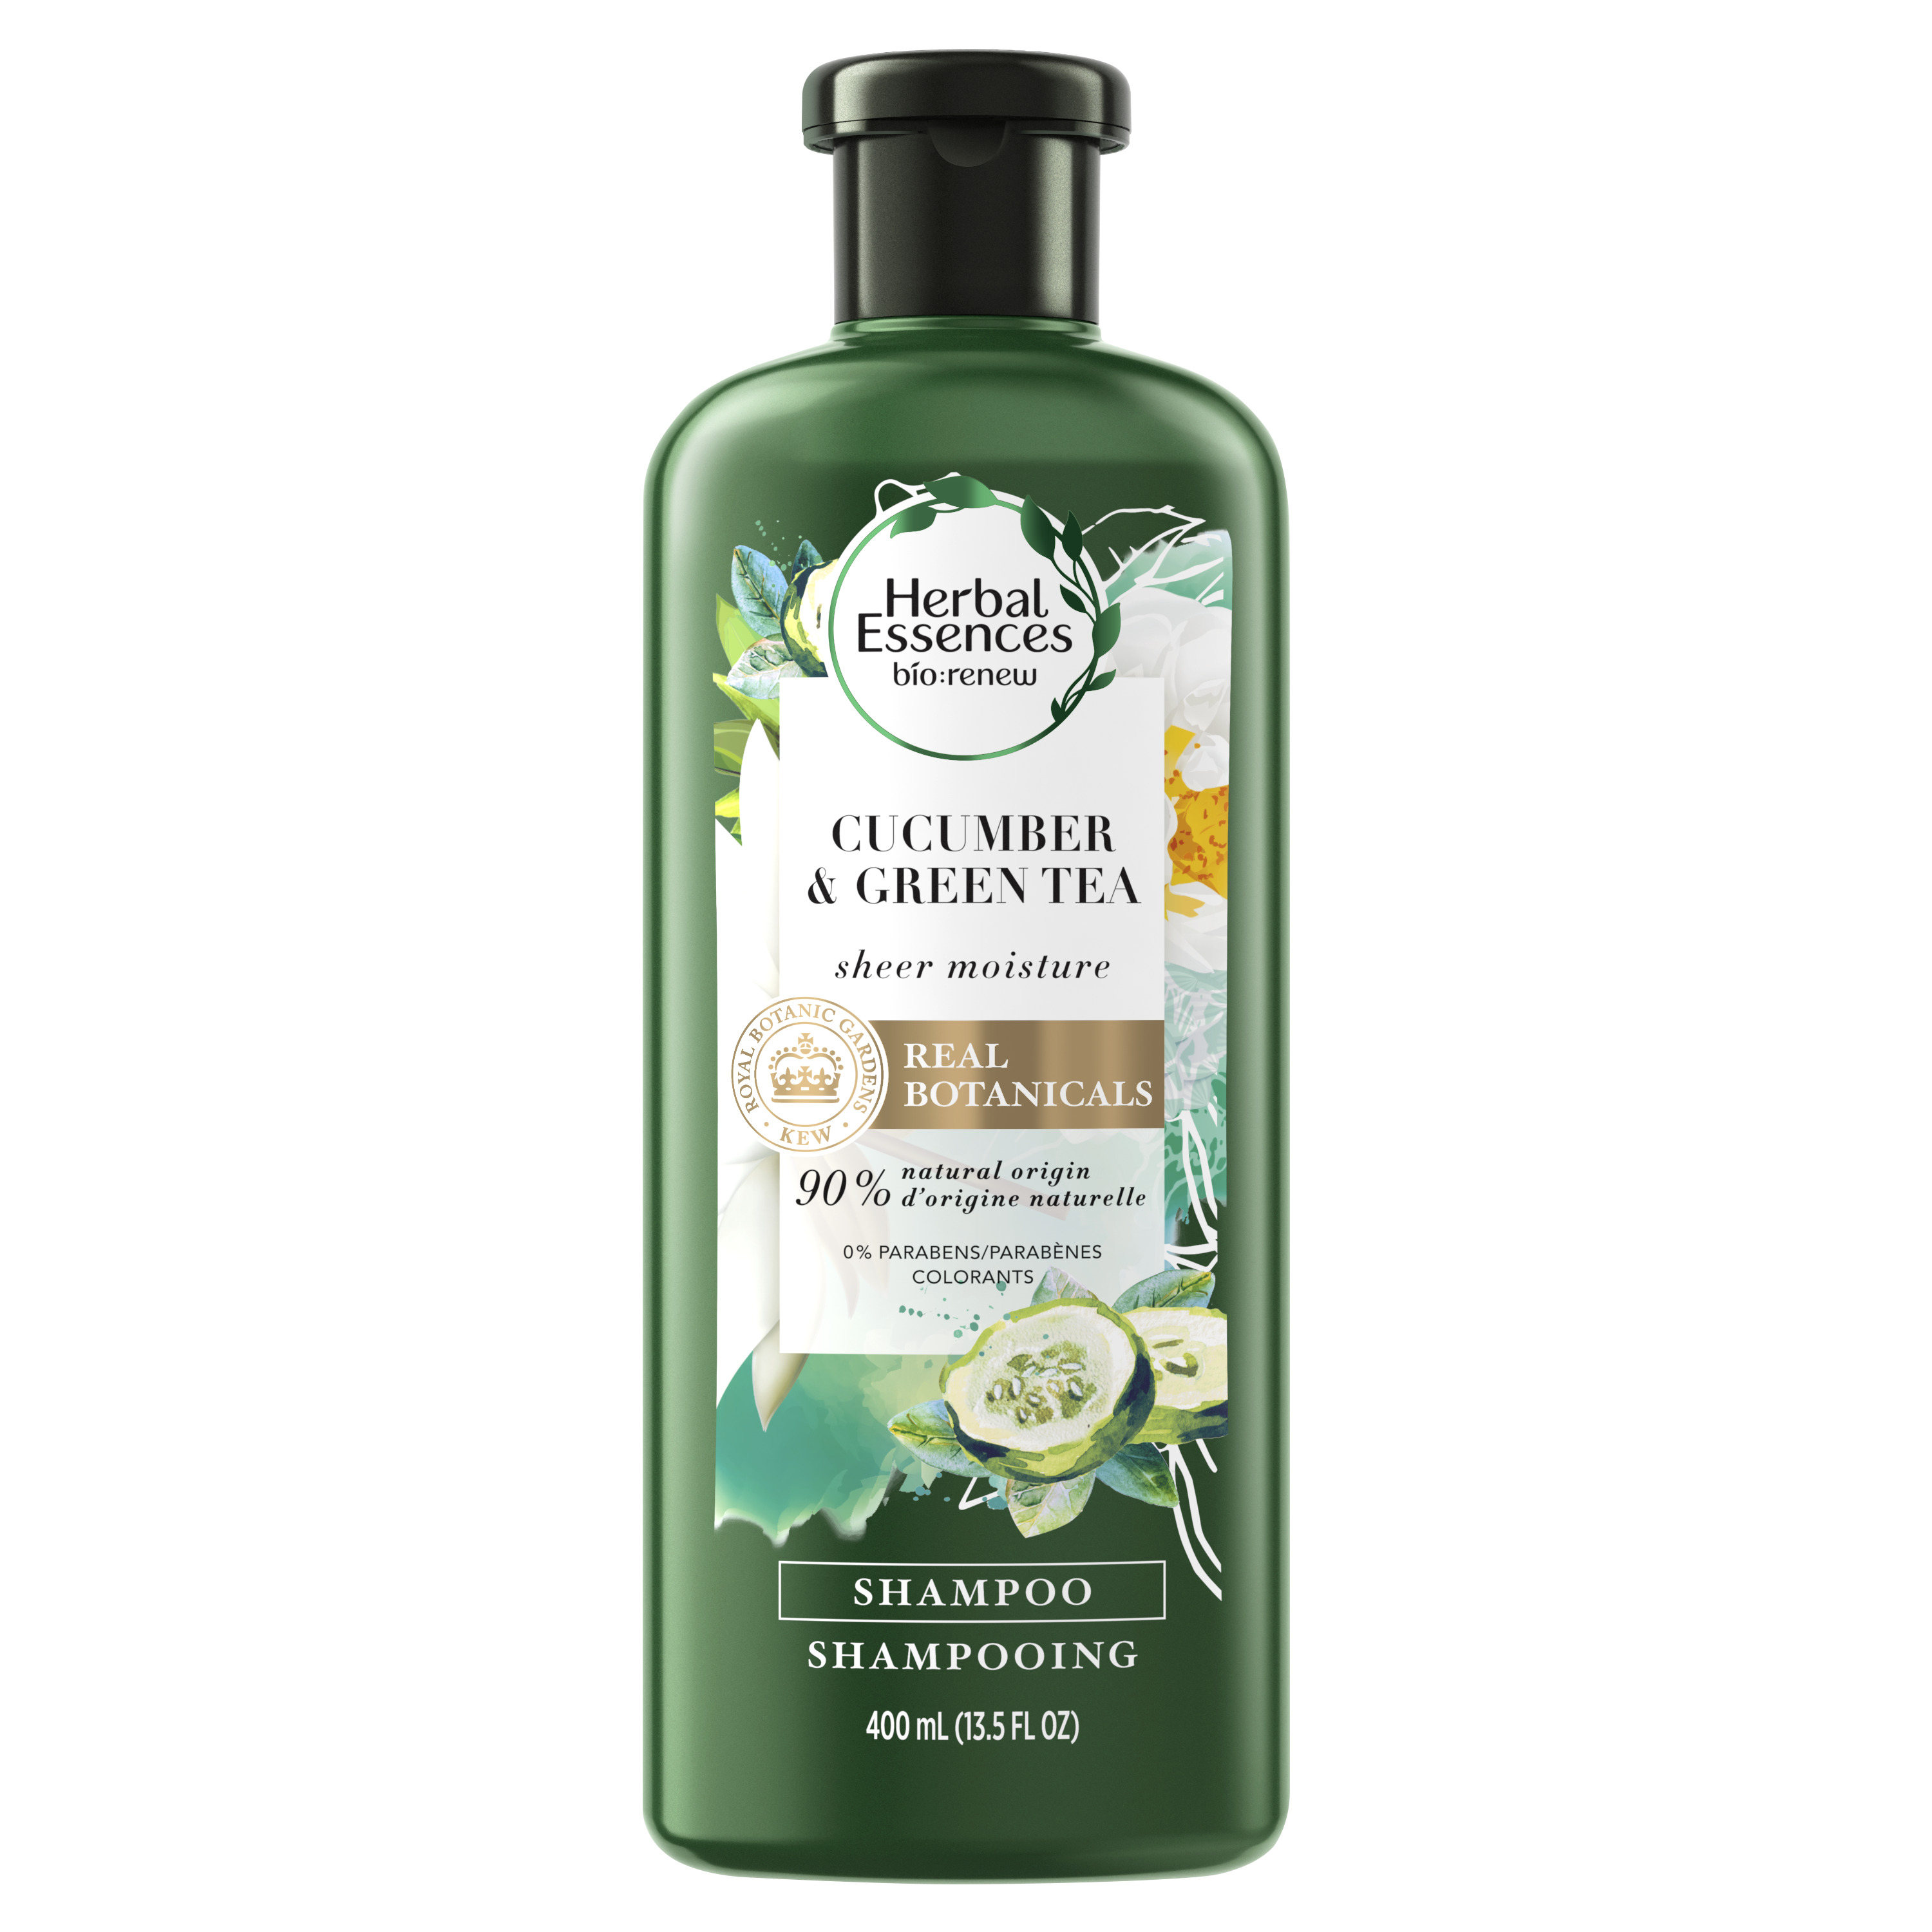 Herbal Essences bio:renew Cucumber & Green Tea Sheer Moisture Shampoo, 13.5 fl oz